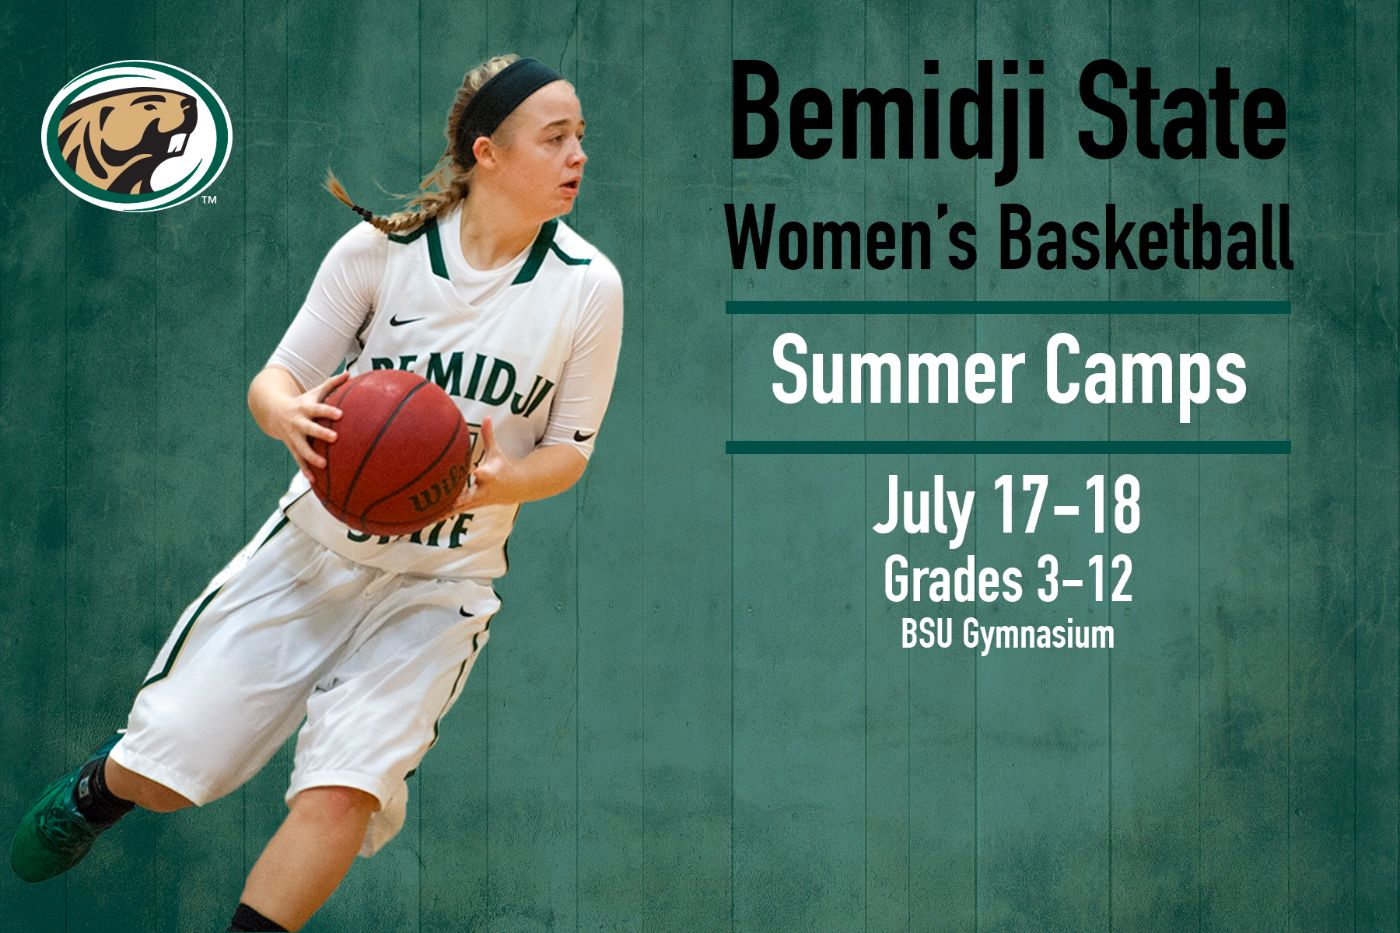 Women's Hoops summer camps now open for registration